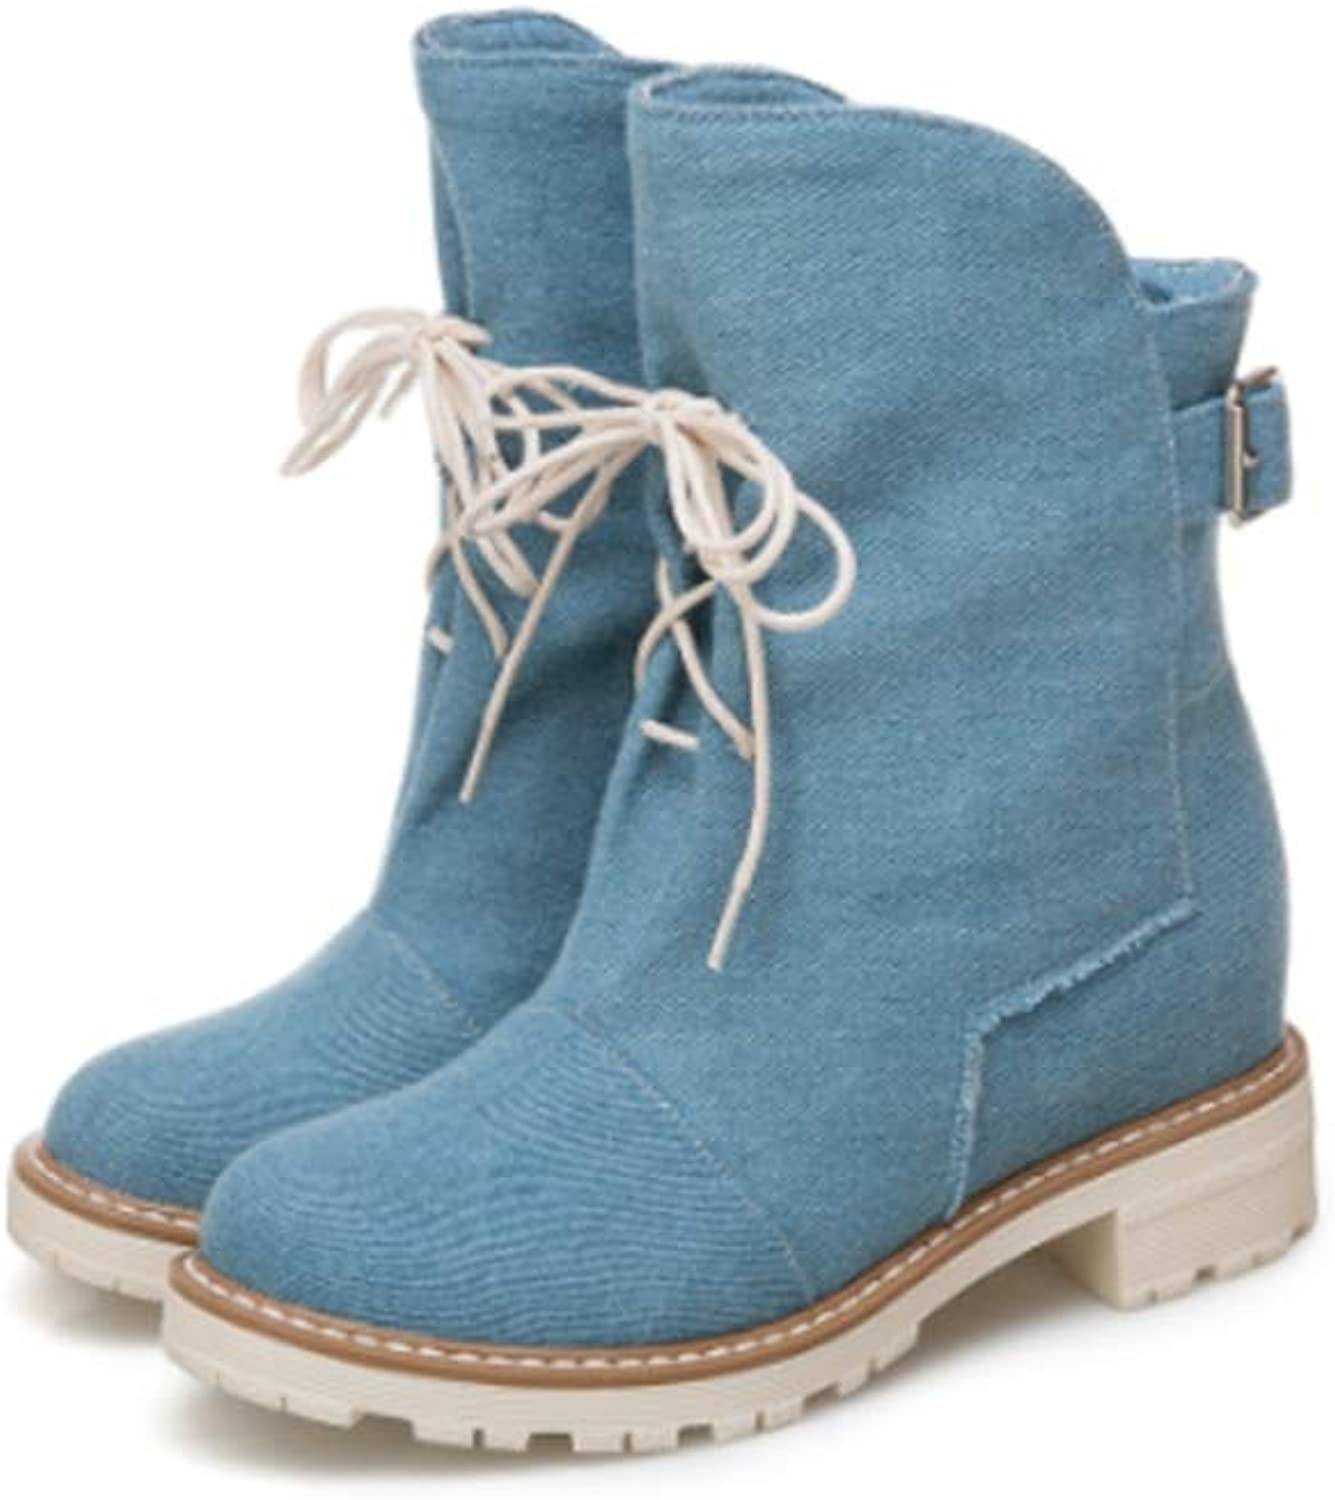 LVYING Women Winter Warm Mid Calf Boots Denim Upper Buckle Strap Cross-Tied Square Heel Round Toe Short Booties